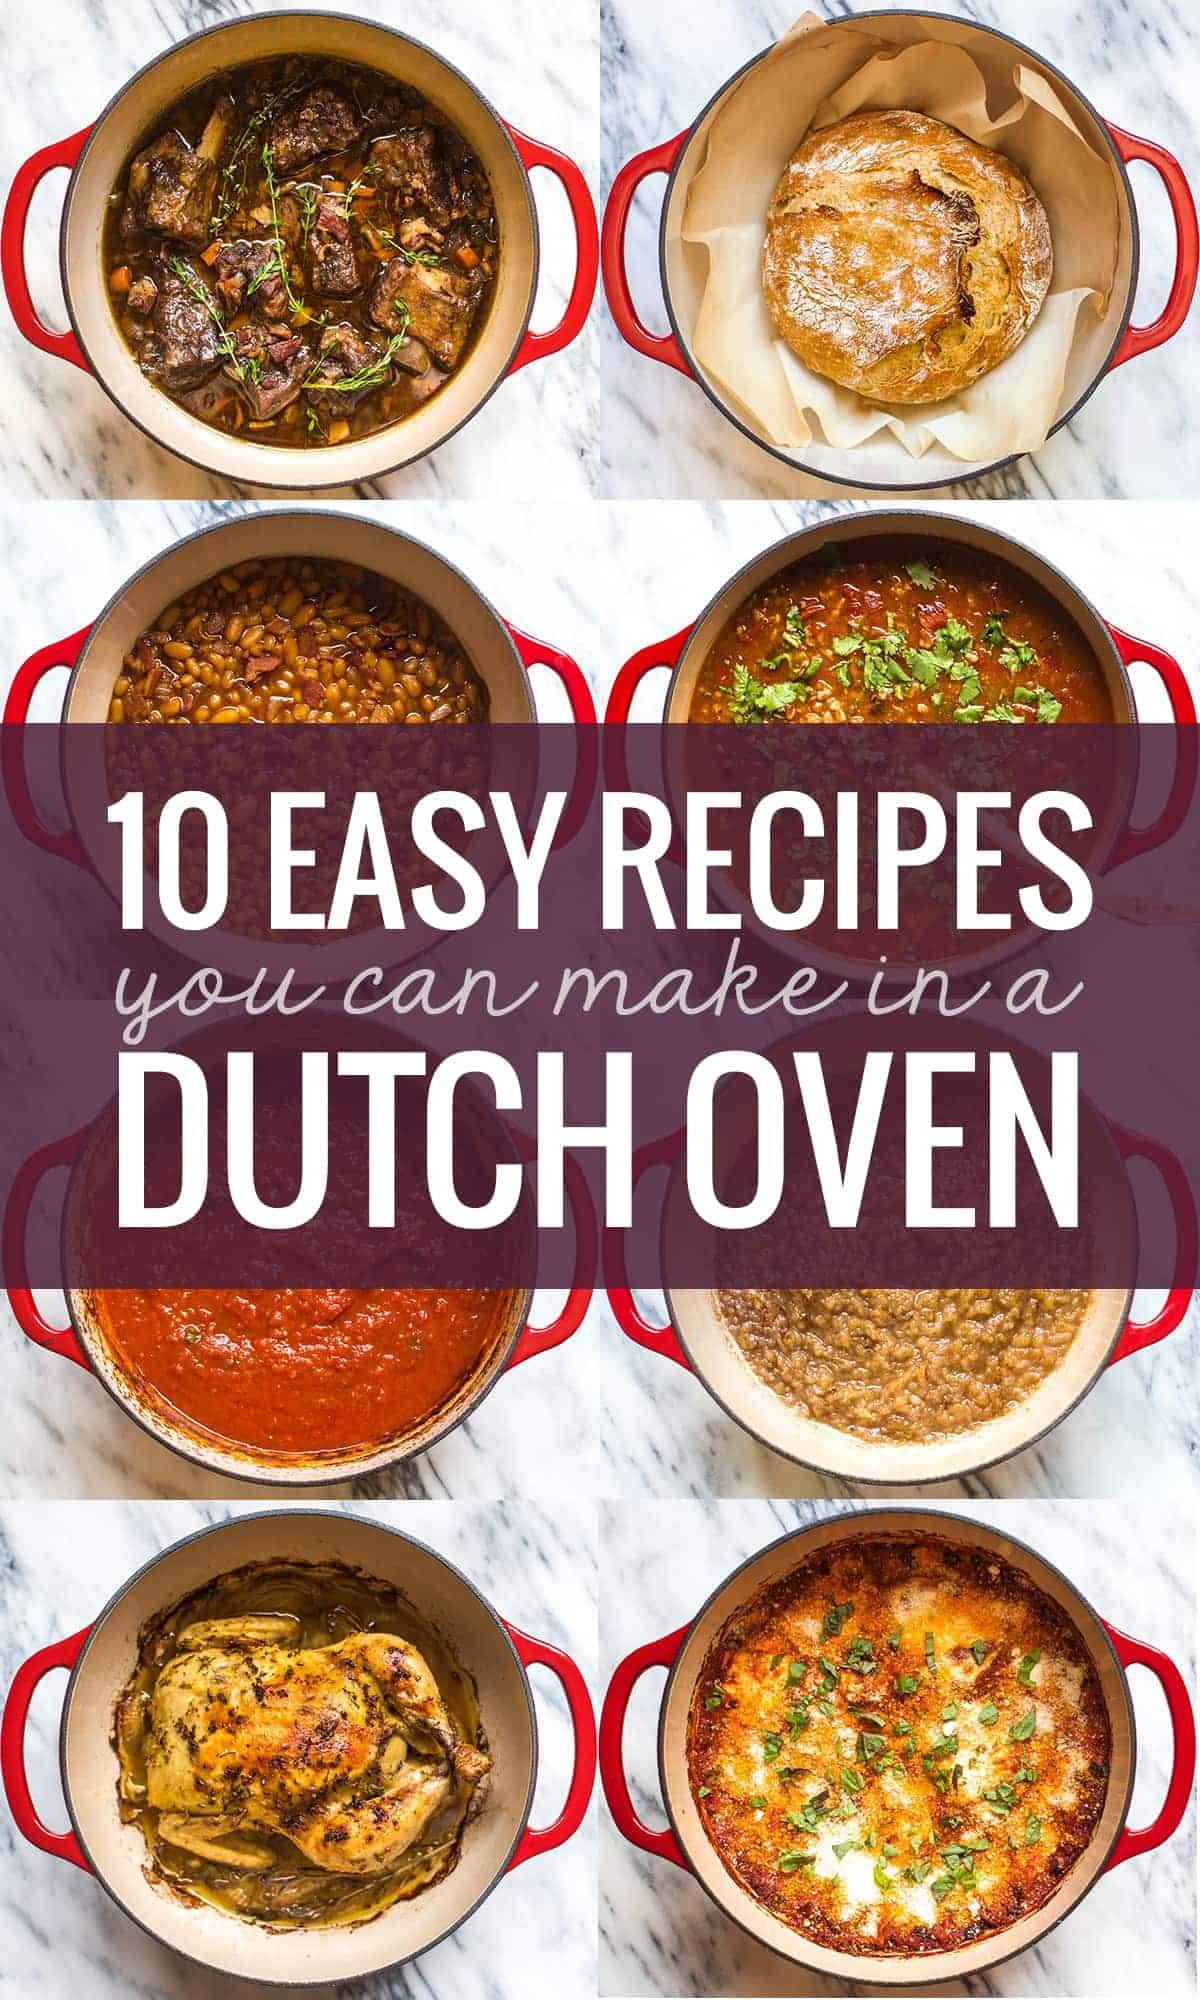 10 easy recipes you can make in a dutch oven pinch of yum 10 easy recipes you can make in a dutch oven forumfinder Images